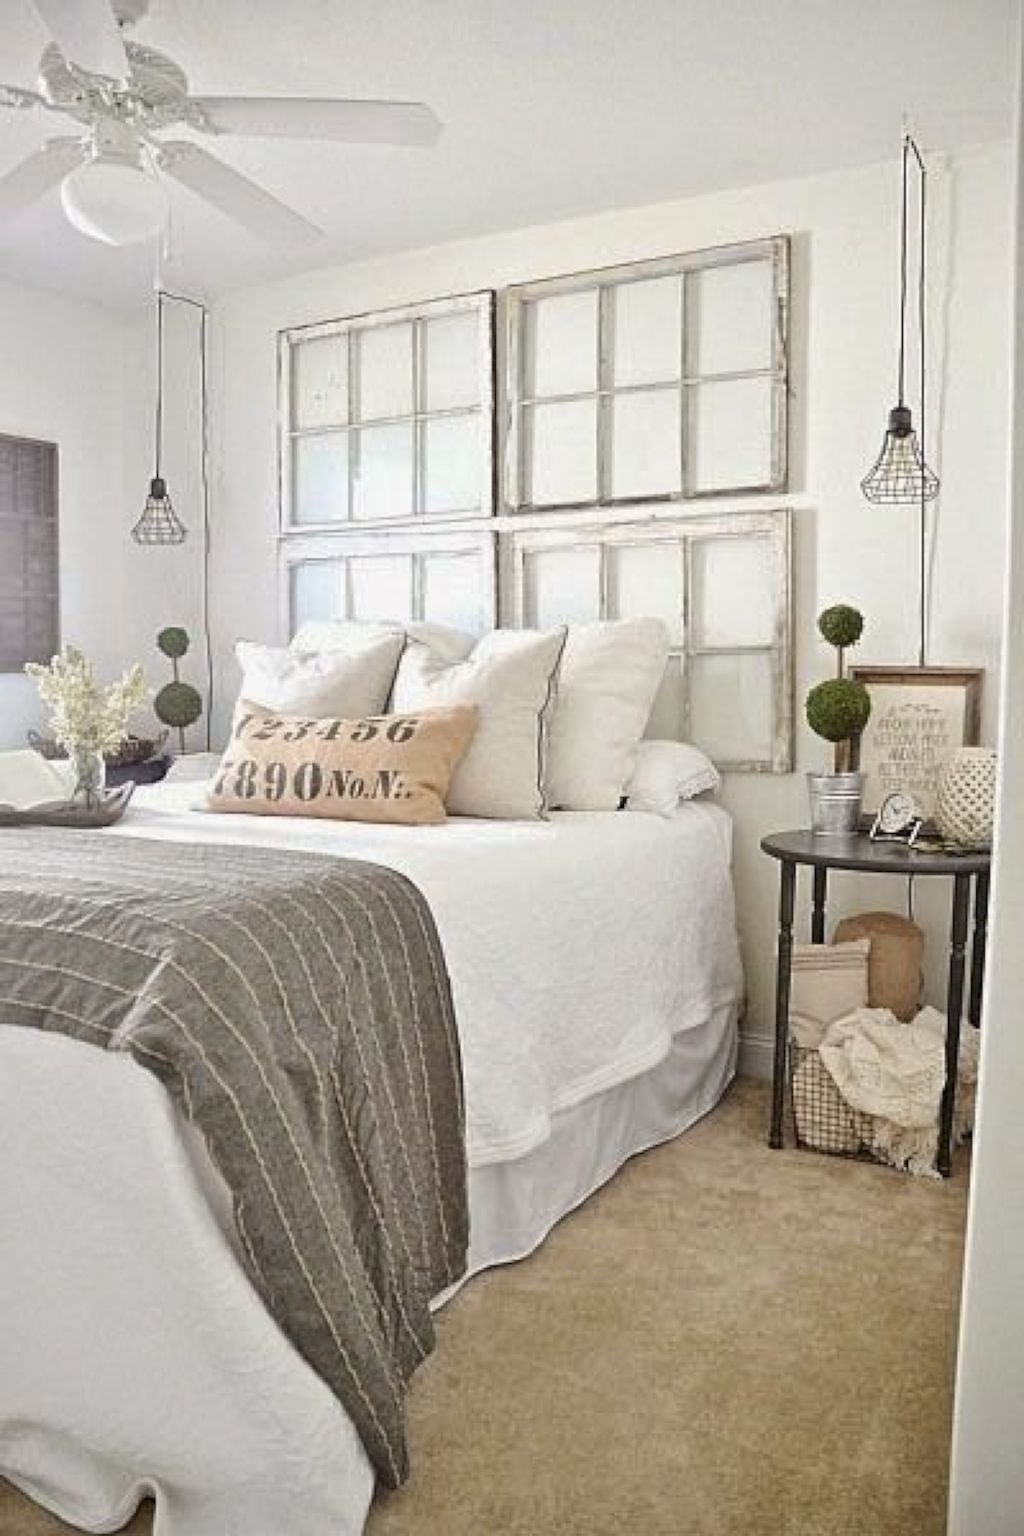 23 Comfy Farmhouse Bedroom Design And Decor Ideas French Country